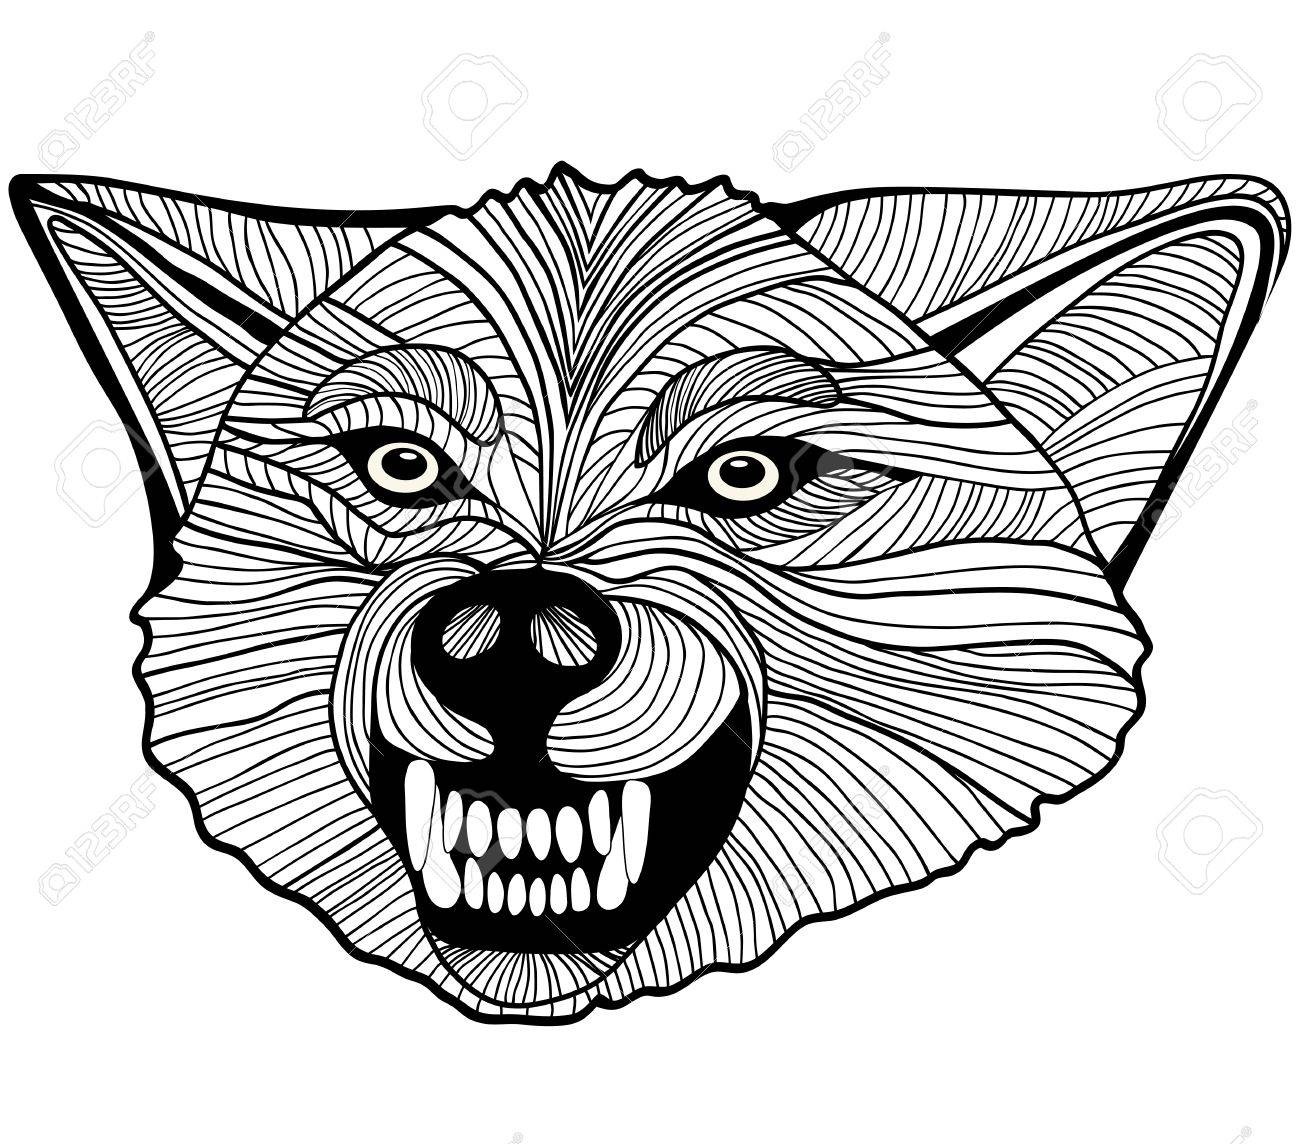 b5b69fbc2957c Wolf head animal illustration for t-shirt. Sketch tattoo design. Stock  Vector -